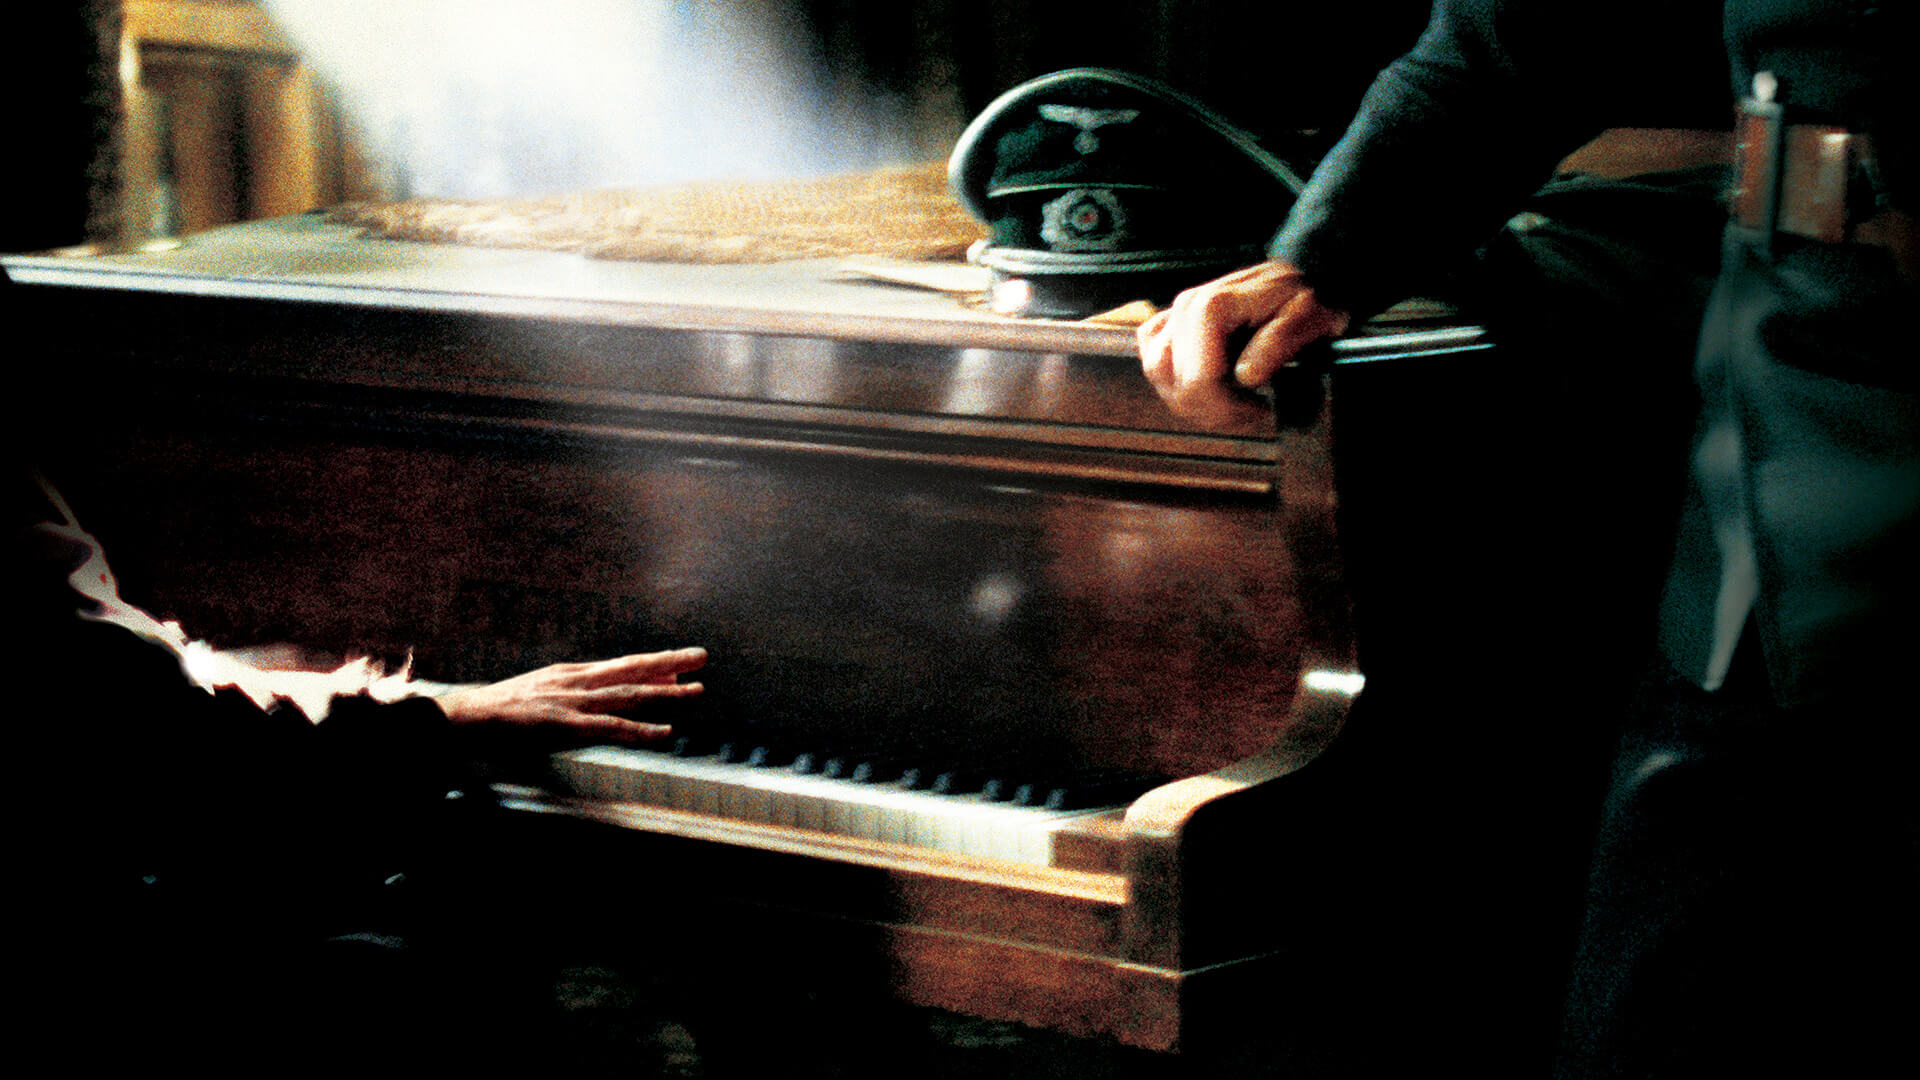 The Pianist  The movie based on the book by Wladyslaw